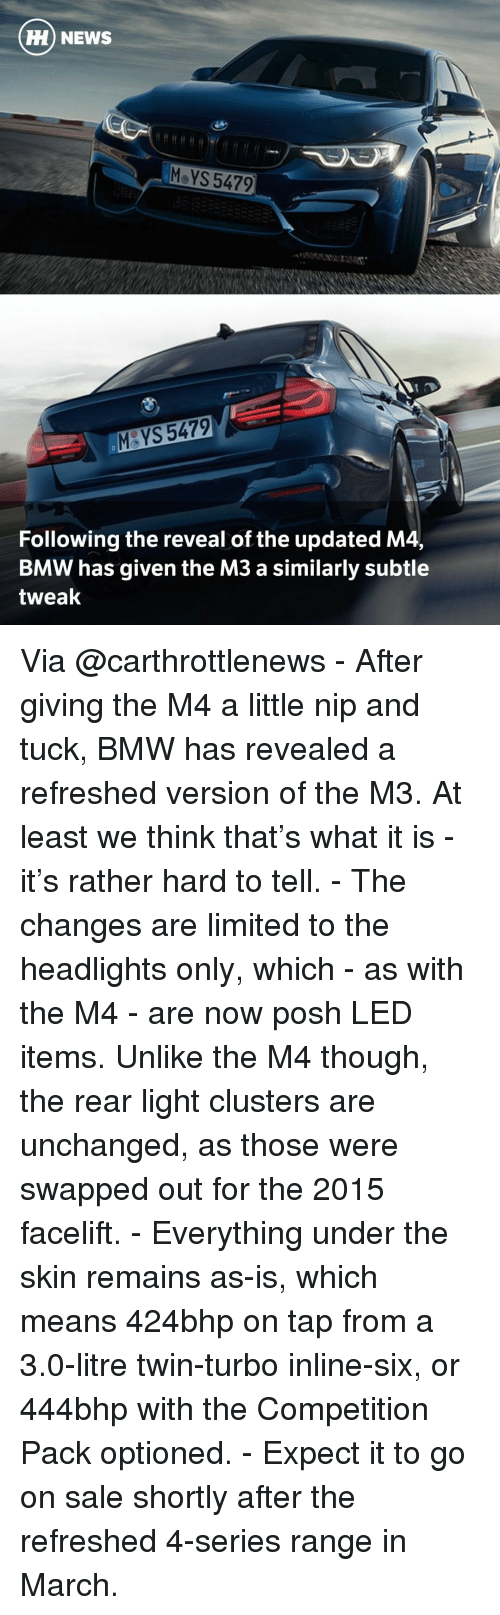 Bmw, Memes, and Twins: HH NEWS  MeYS 5479  5479  Following the reveal of the updated M4,  BMW has given the M3 a similarly subtle  tweak Via @carthrottlenews - After giving the M4 a little nip and tuck, BMW has revealed a refreshed version of the M3. At least we think that's what it is - it's rather hard to tell. - The changes are limited to the headlights only, which - as with the M4 - are now posh LED items. Unlike the M4 though, the rear light clusters are unchanged, as those were swapped out for the 2015 facelift. - Everything under the skin remains as-is, which means 424bhp on tap from a 3.0-litre twin-turbo inline-six, or 444bhp with the Competition Pack optioned. - Expect it to go on sale shortly after the refreshed 4-series range in March.